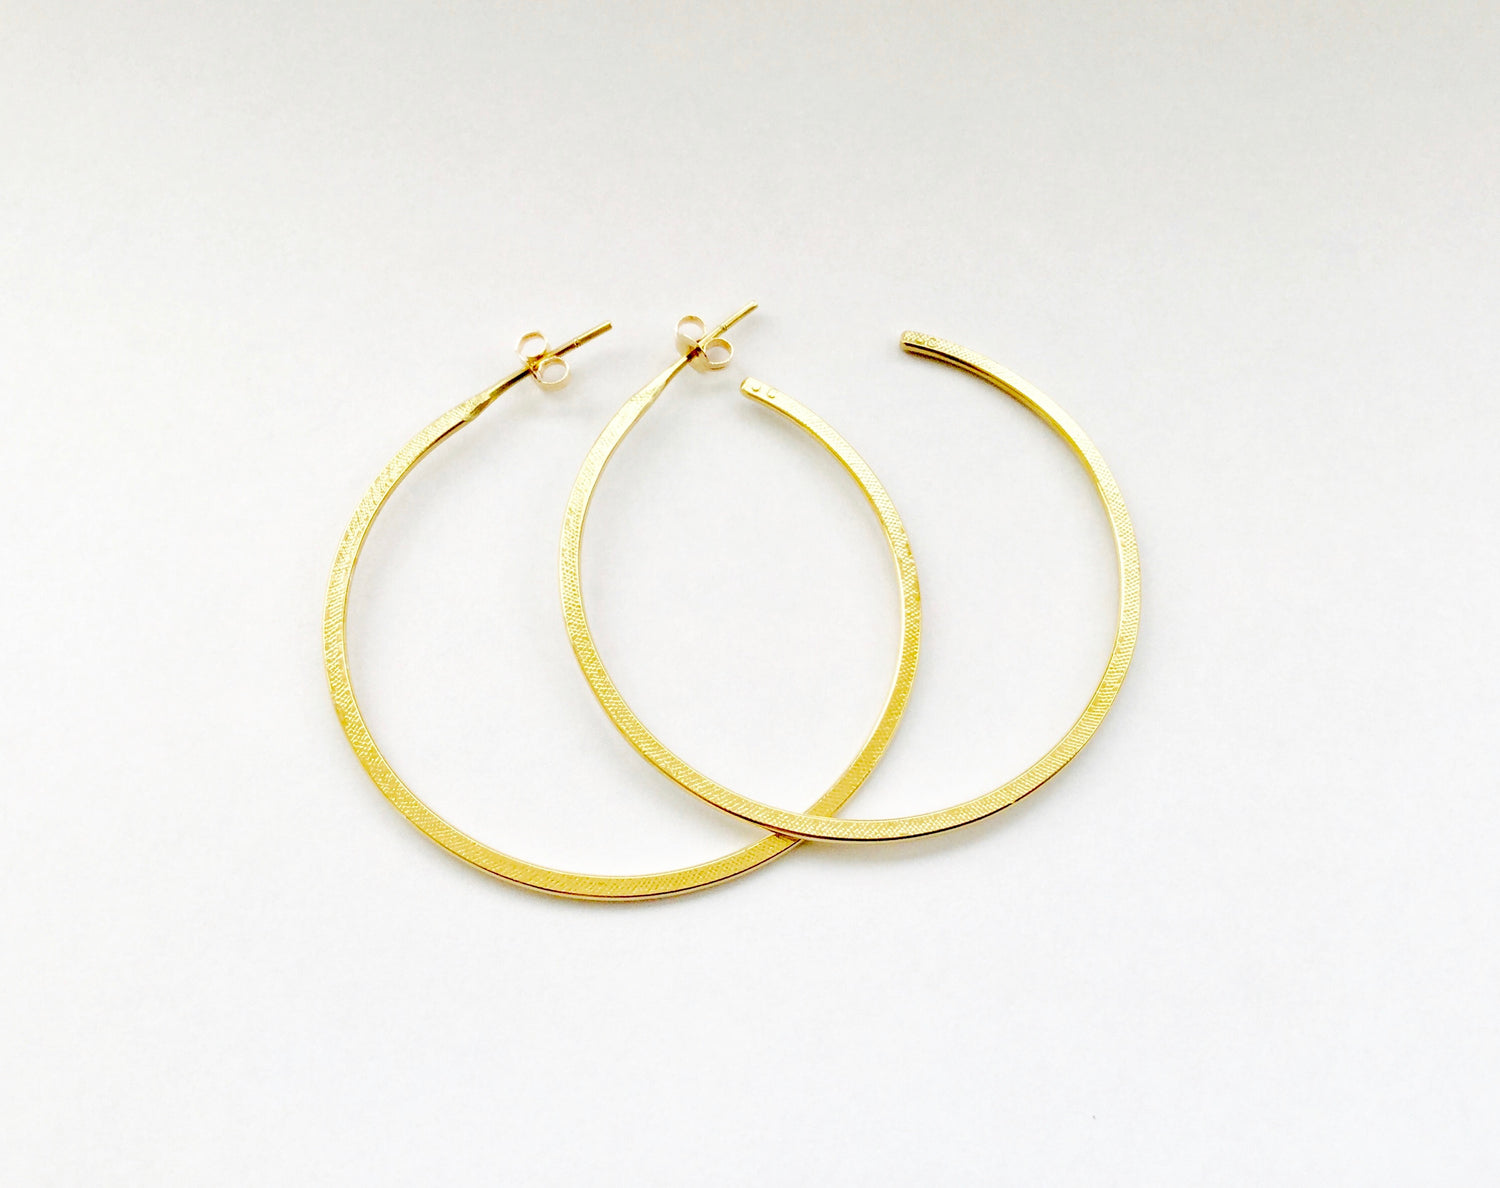 New Hoop Earring, Medium, gold